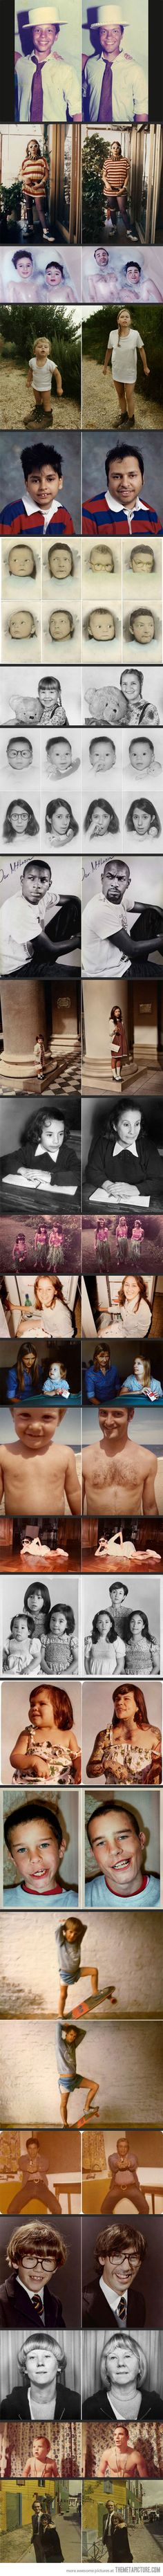 Then and Now pics..  Great idea....